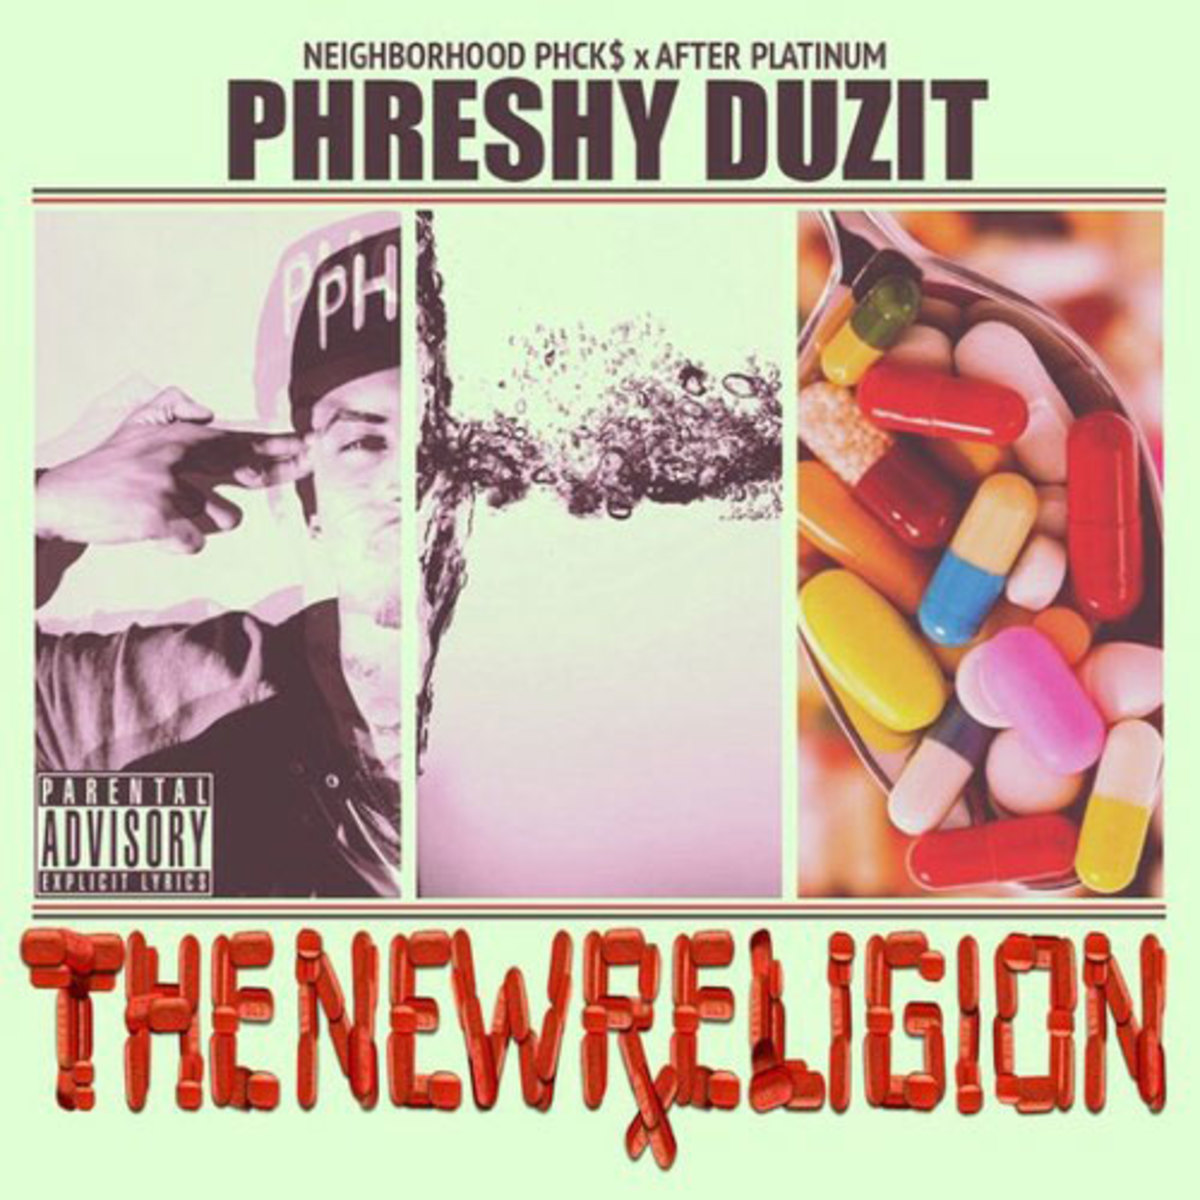 phreshyduzit-religion.jpg